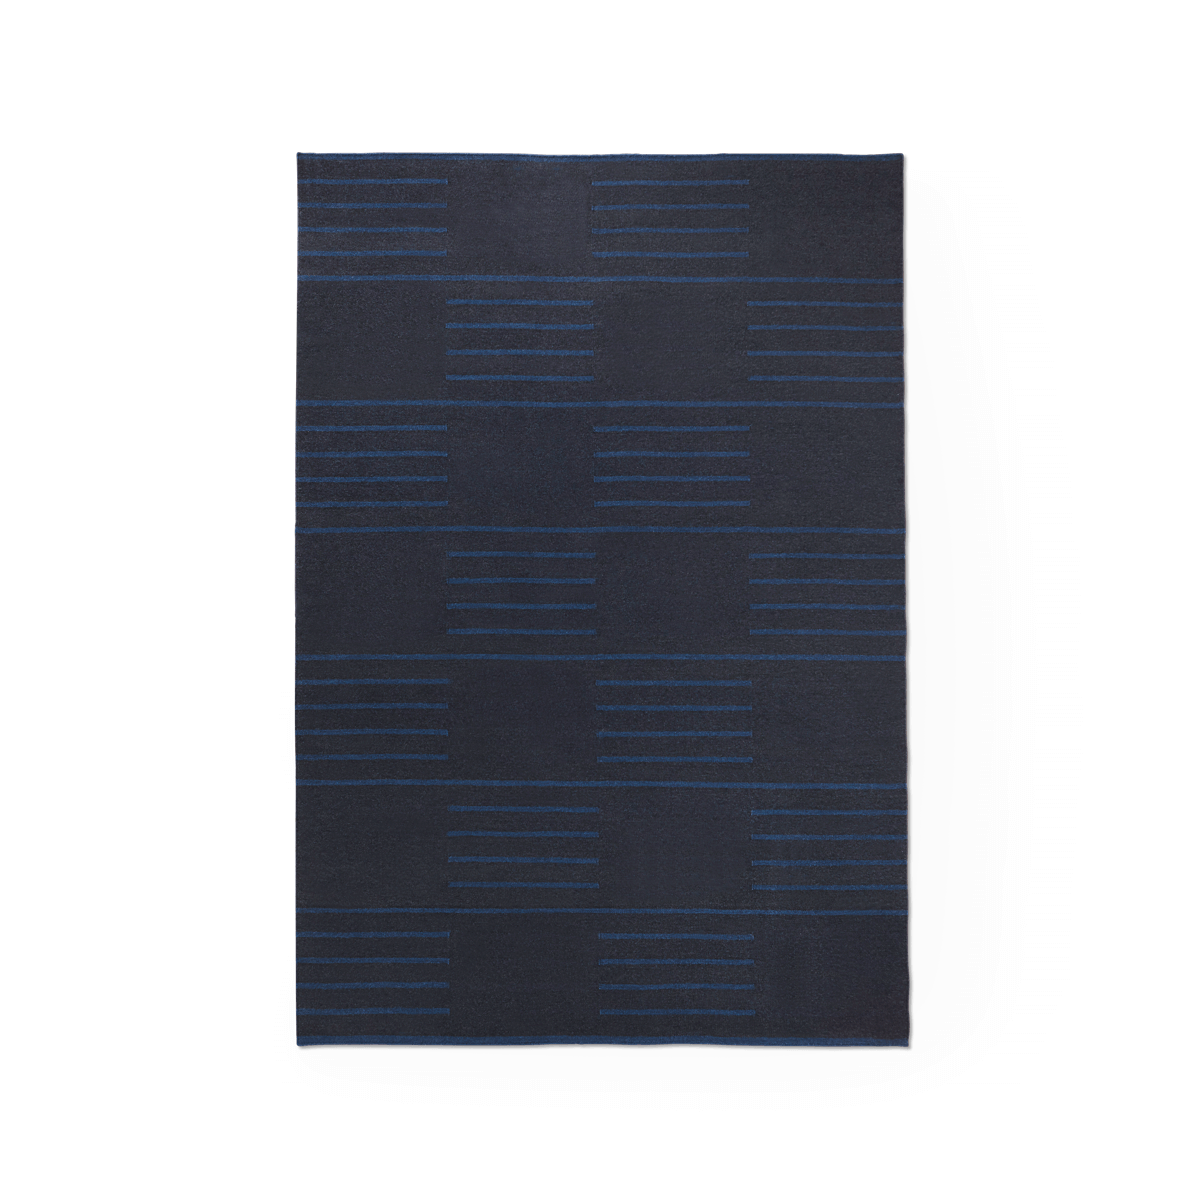 Product image of the flatweave rug Classic in the color Black. On it is a pattern made out of stripes in a checkerboard fashion in a blue color.